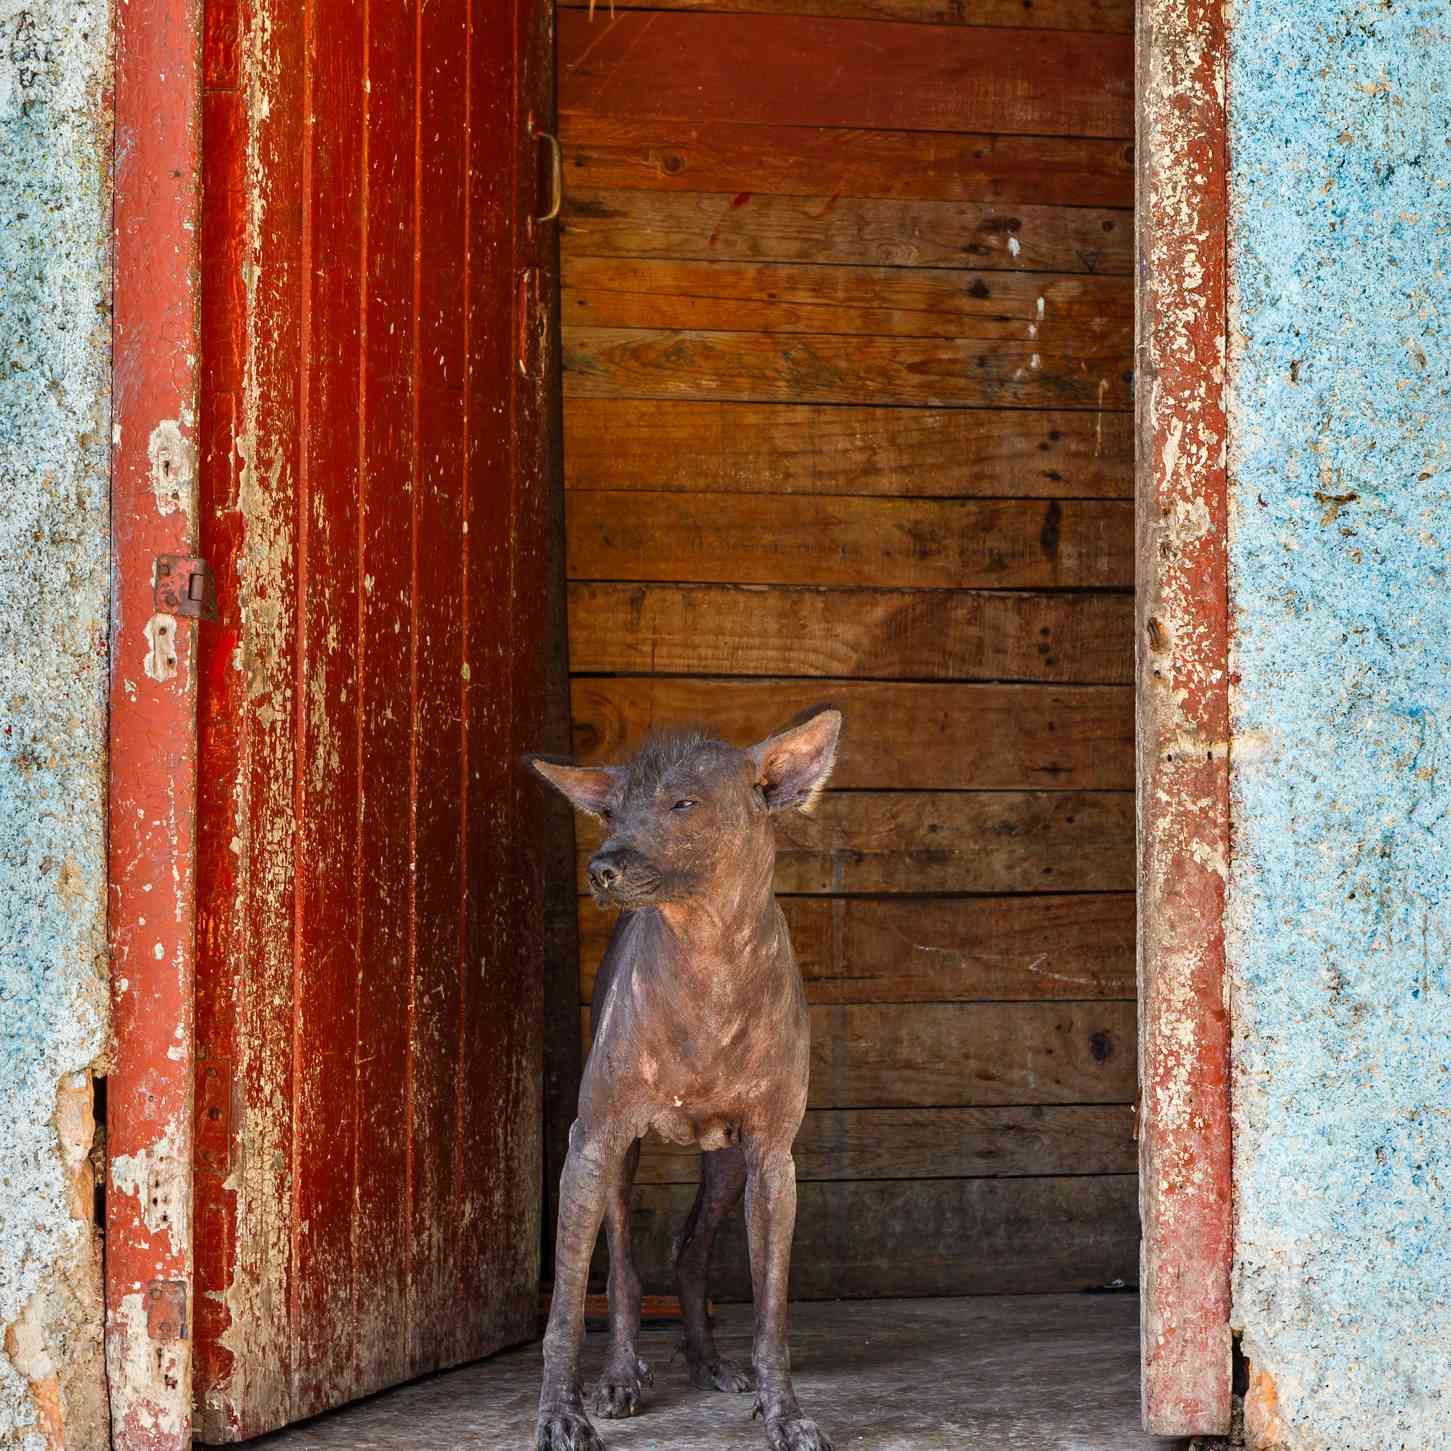 A small hairless dog standing on a cement step in front of a wooden door.